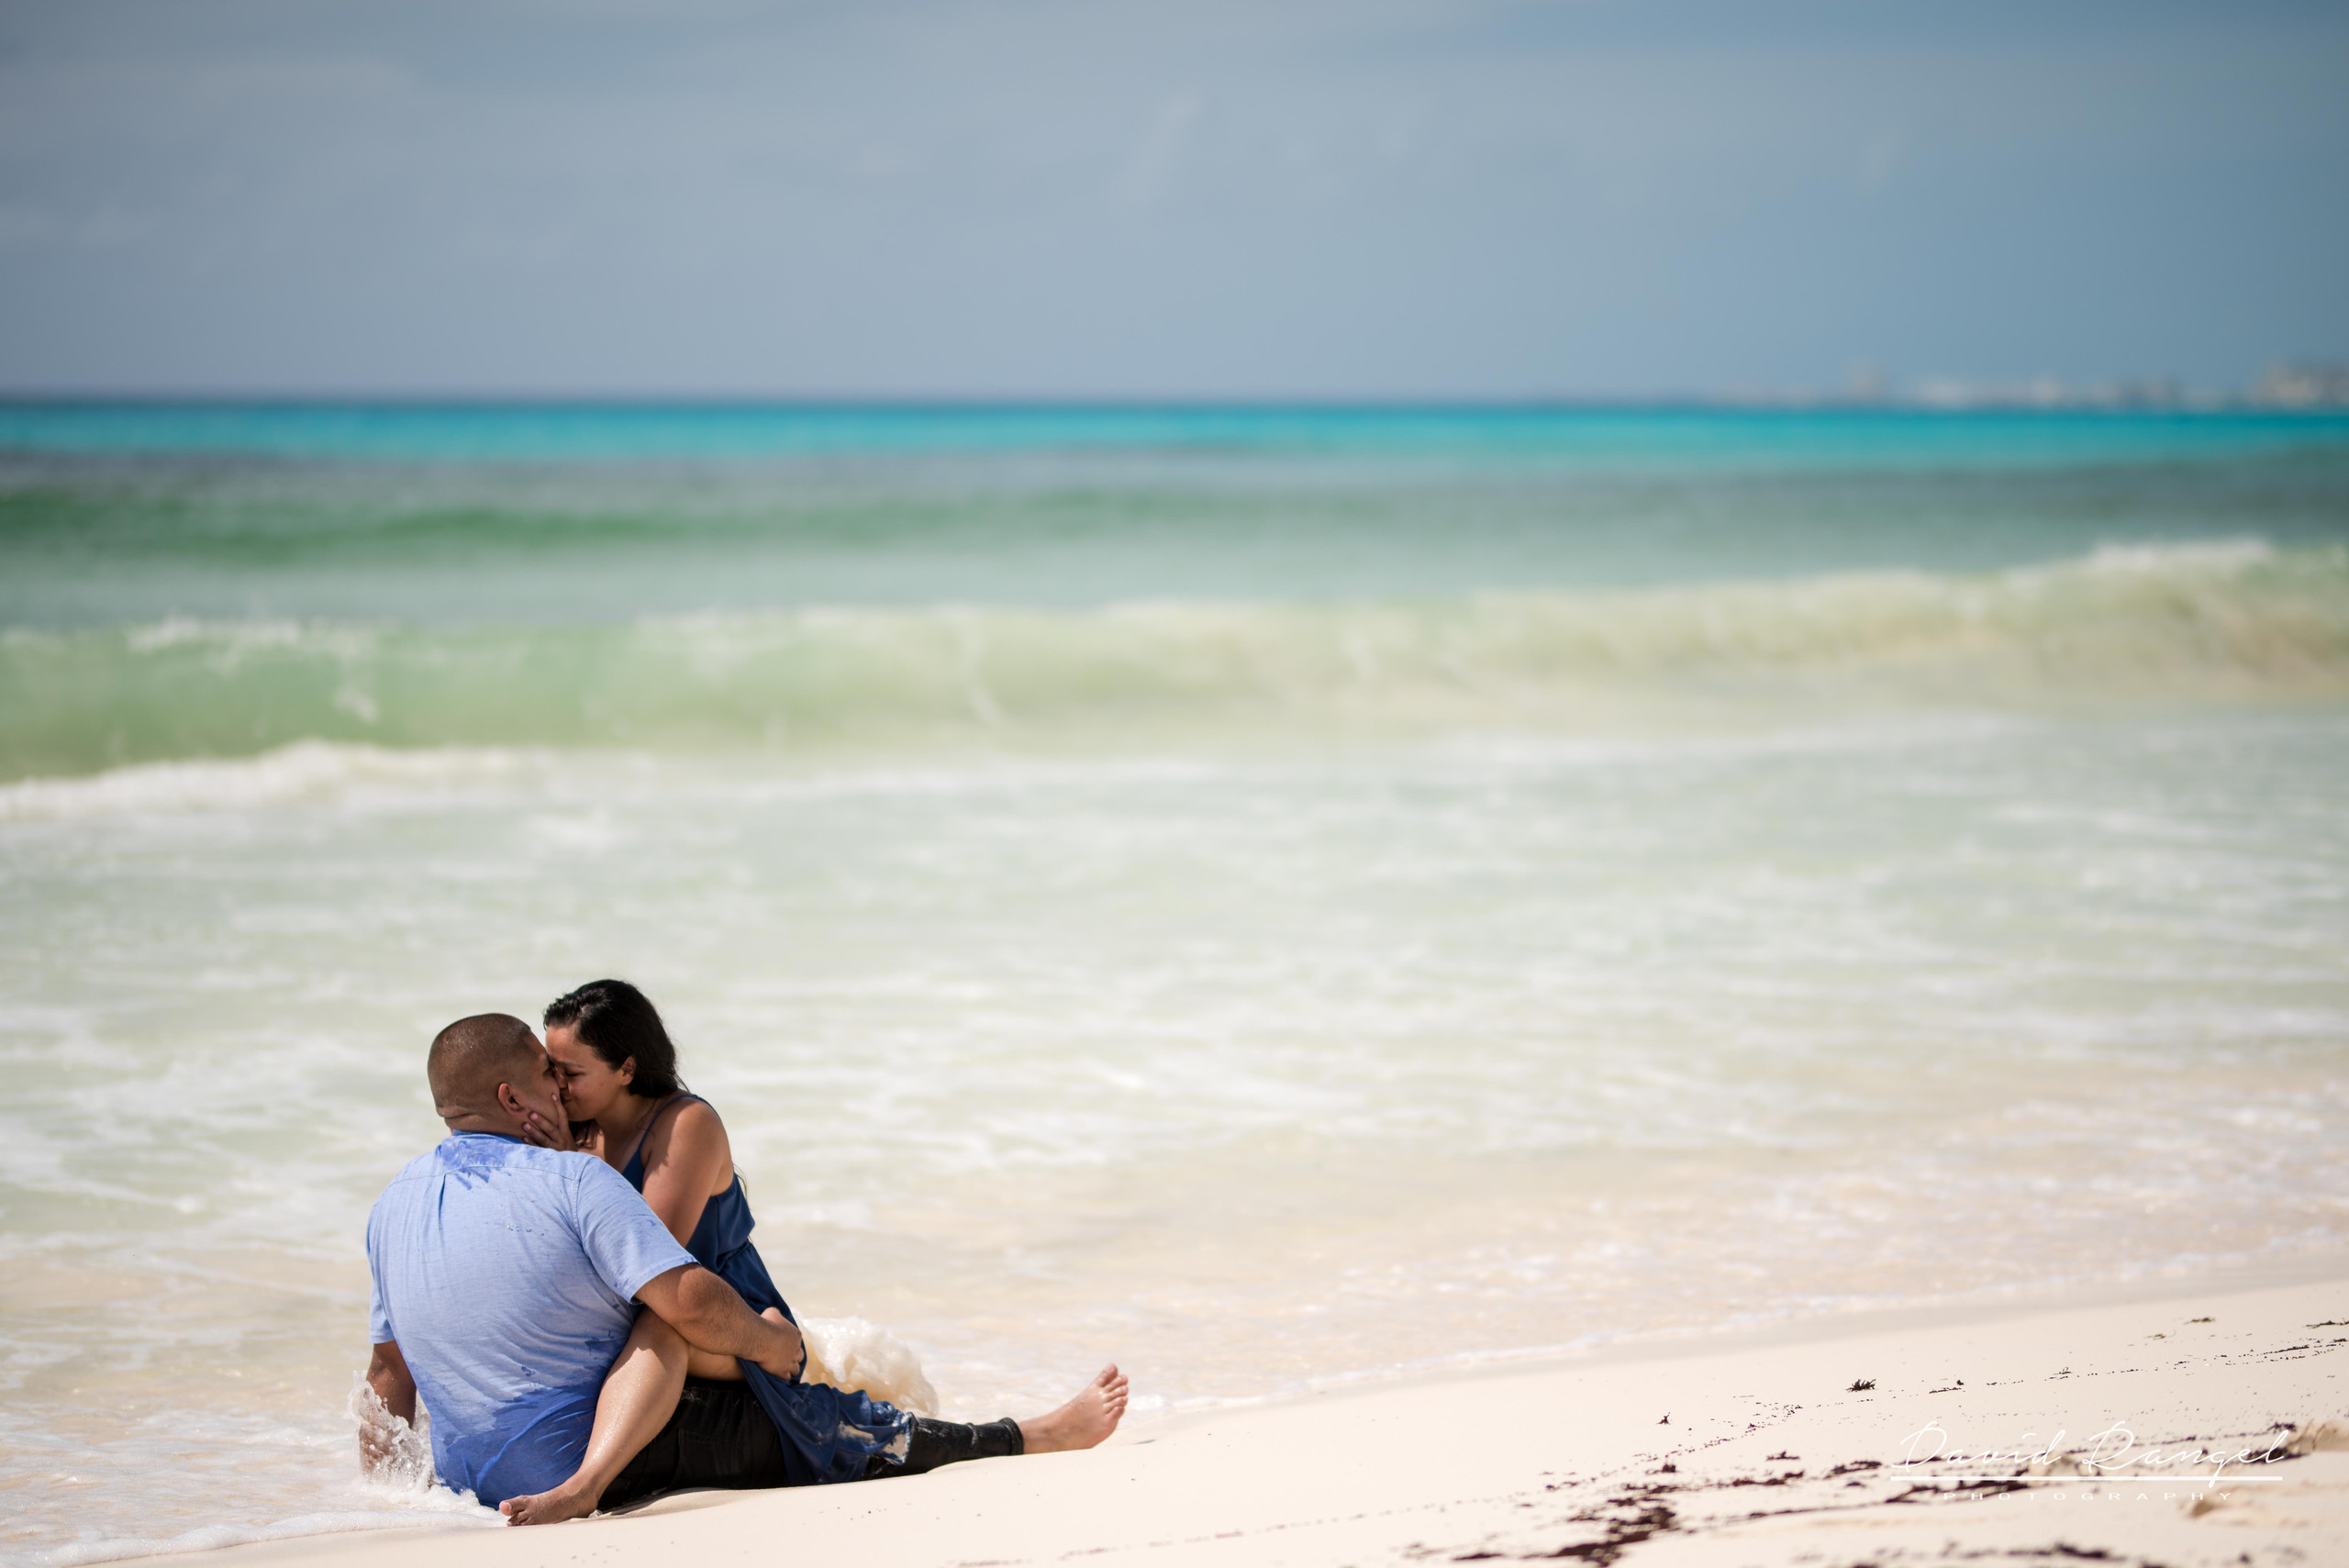 engagement+session+couple+love+photo+pre-wedding+beach+cancun+riviera+maya+hotel+zone+happiness